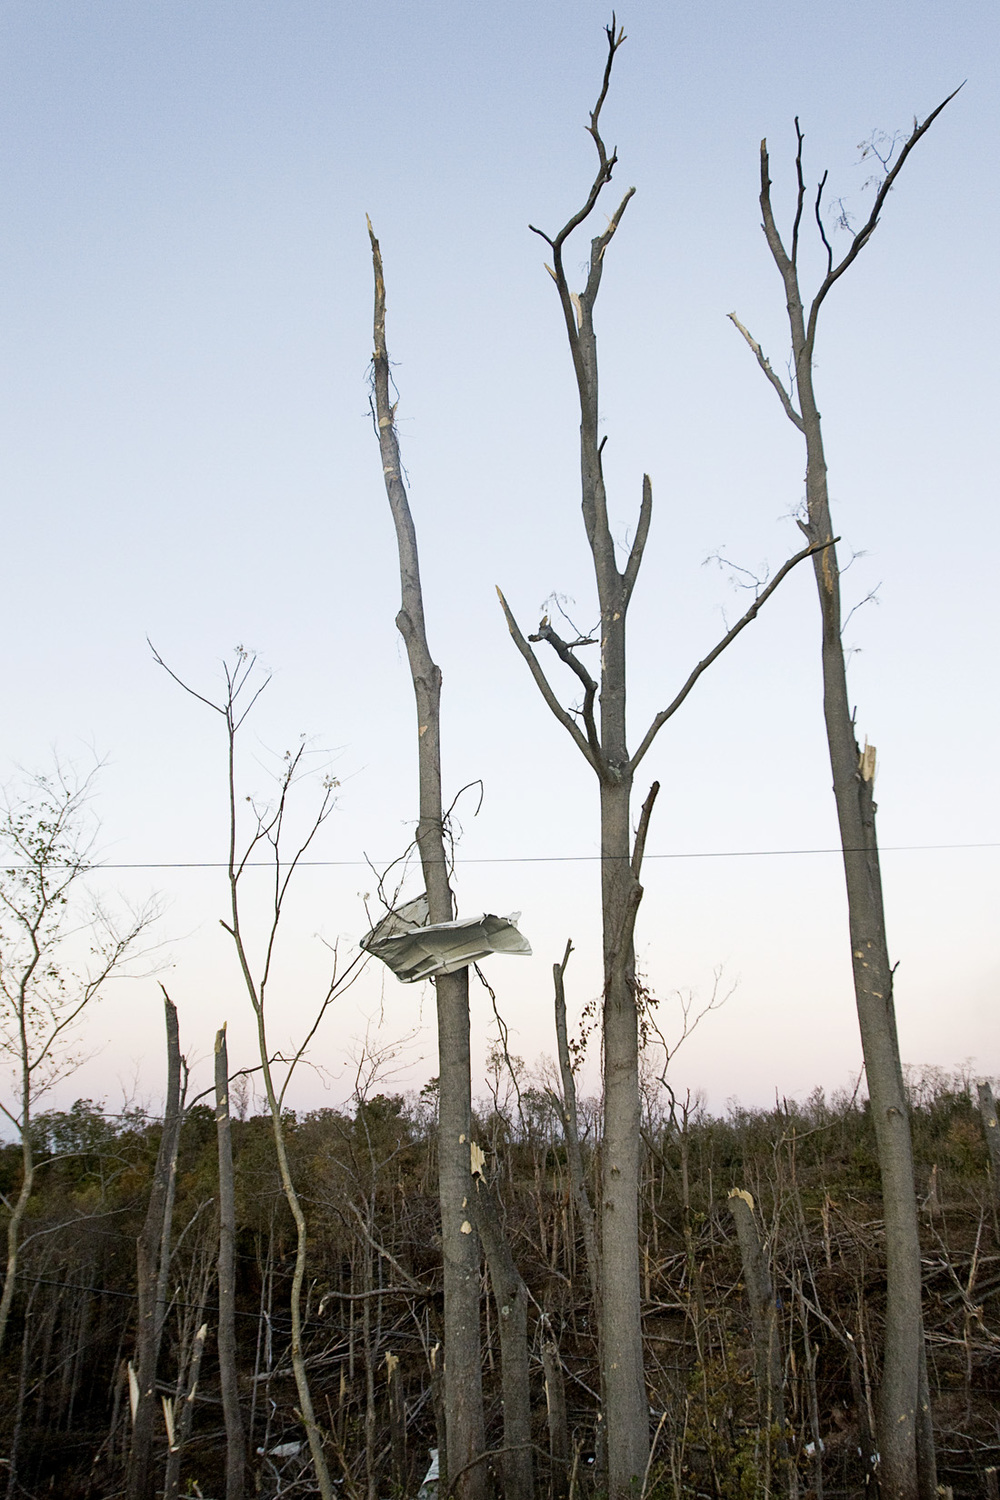 Debris rests among broken trees in Reedsville, Ohio.